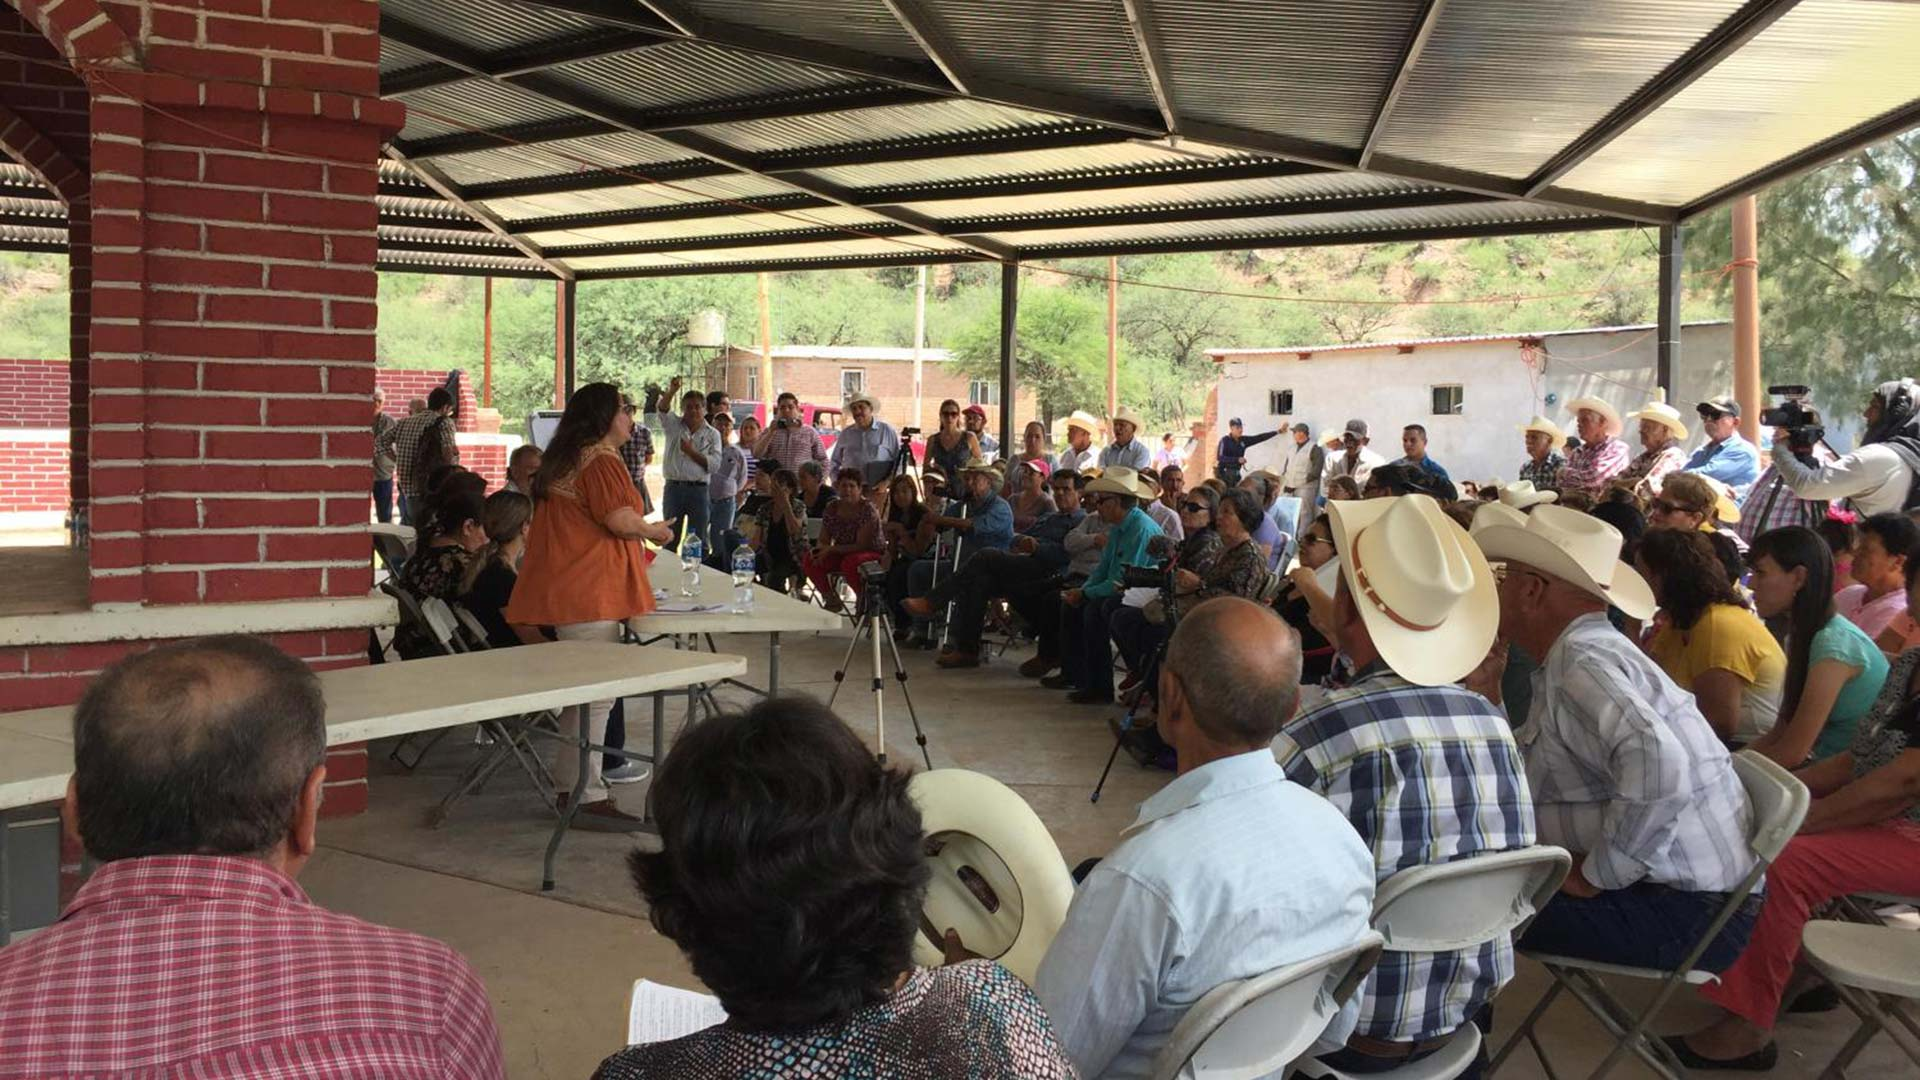 Mexican authorities meet with people affected by the 2014 mining spill in the Rio Sonora in the town of Bacanuchi, Sonora on Sept. 6, 2019.